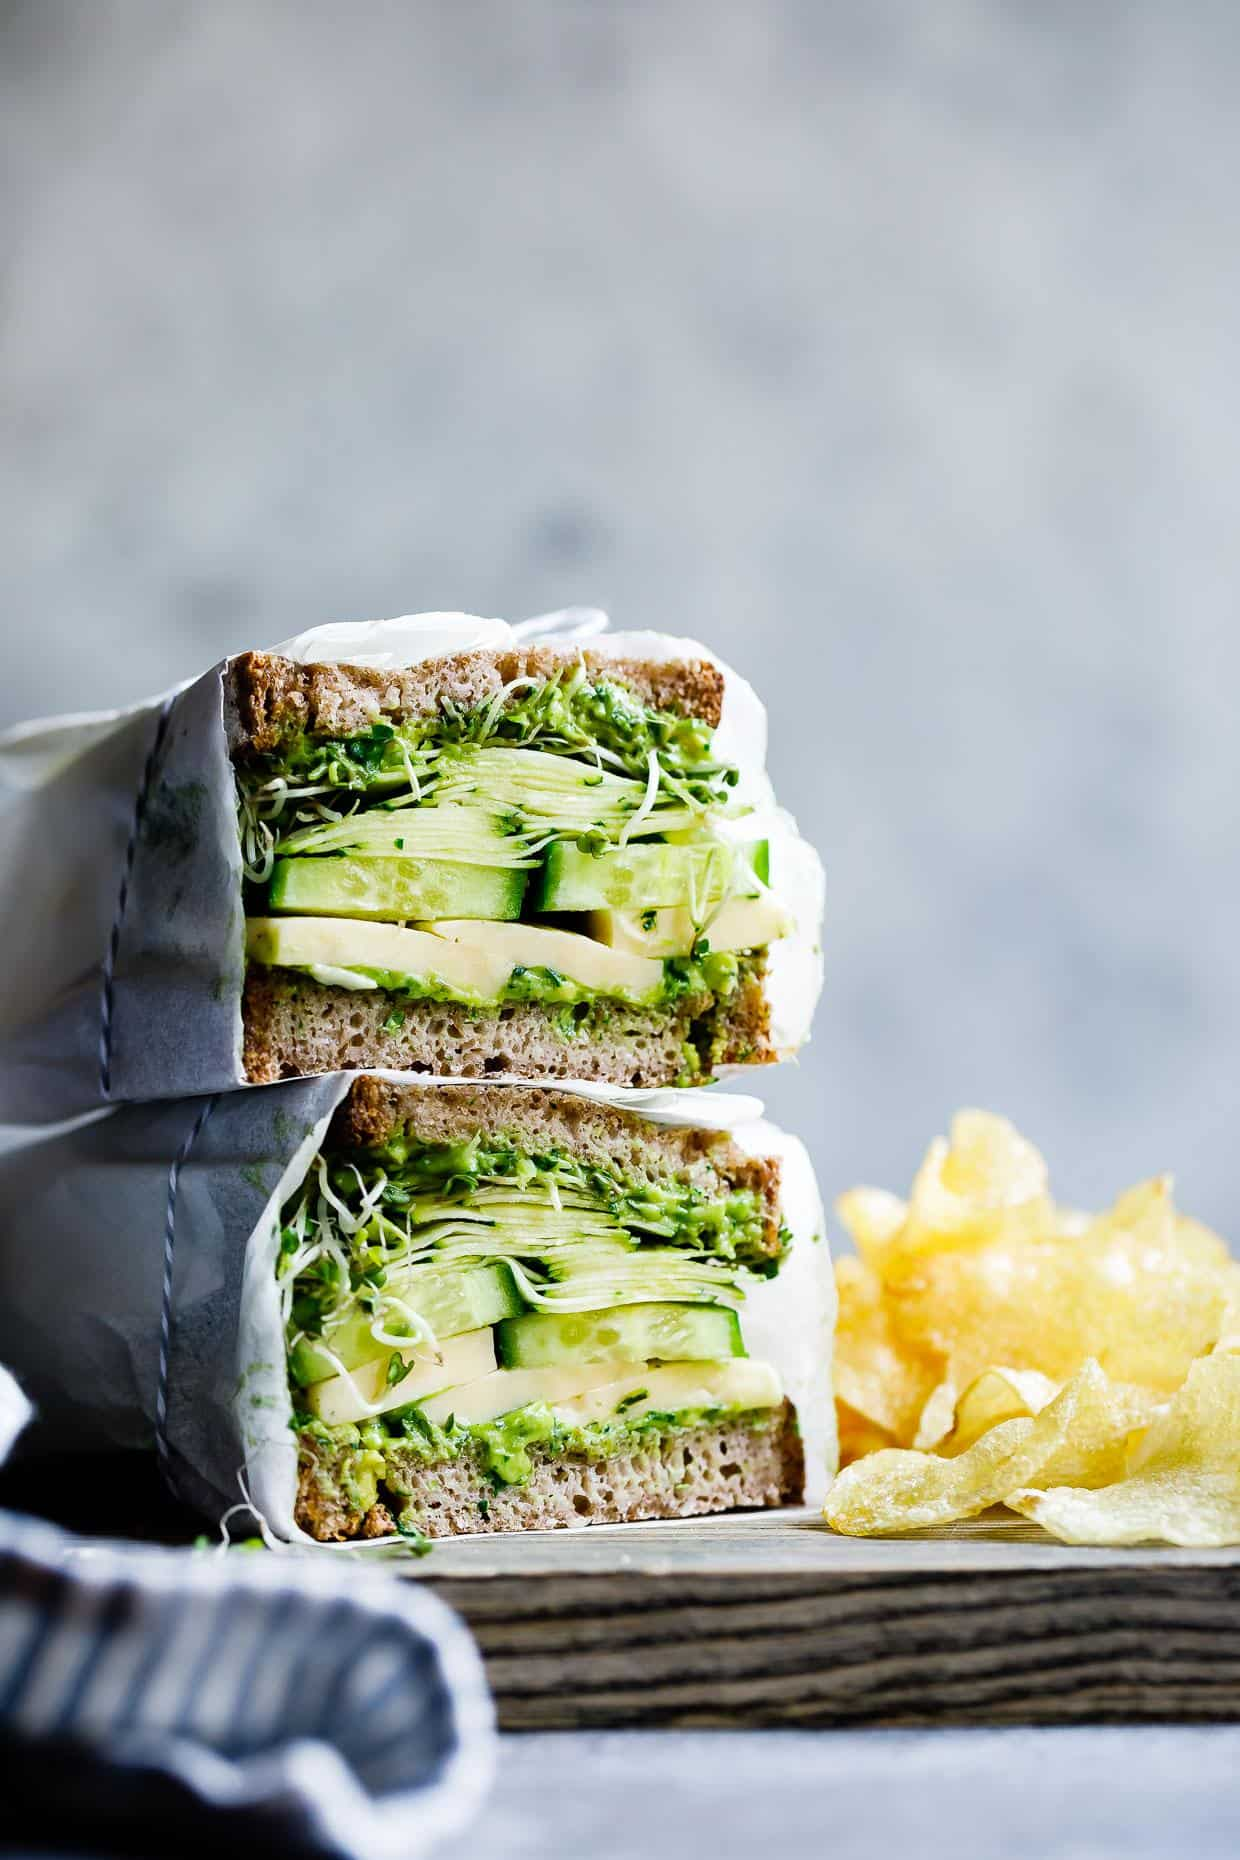 Green Sandwich Recipes That Are Veggie Greatness - An Unblurred Lady